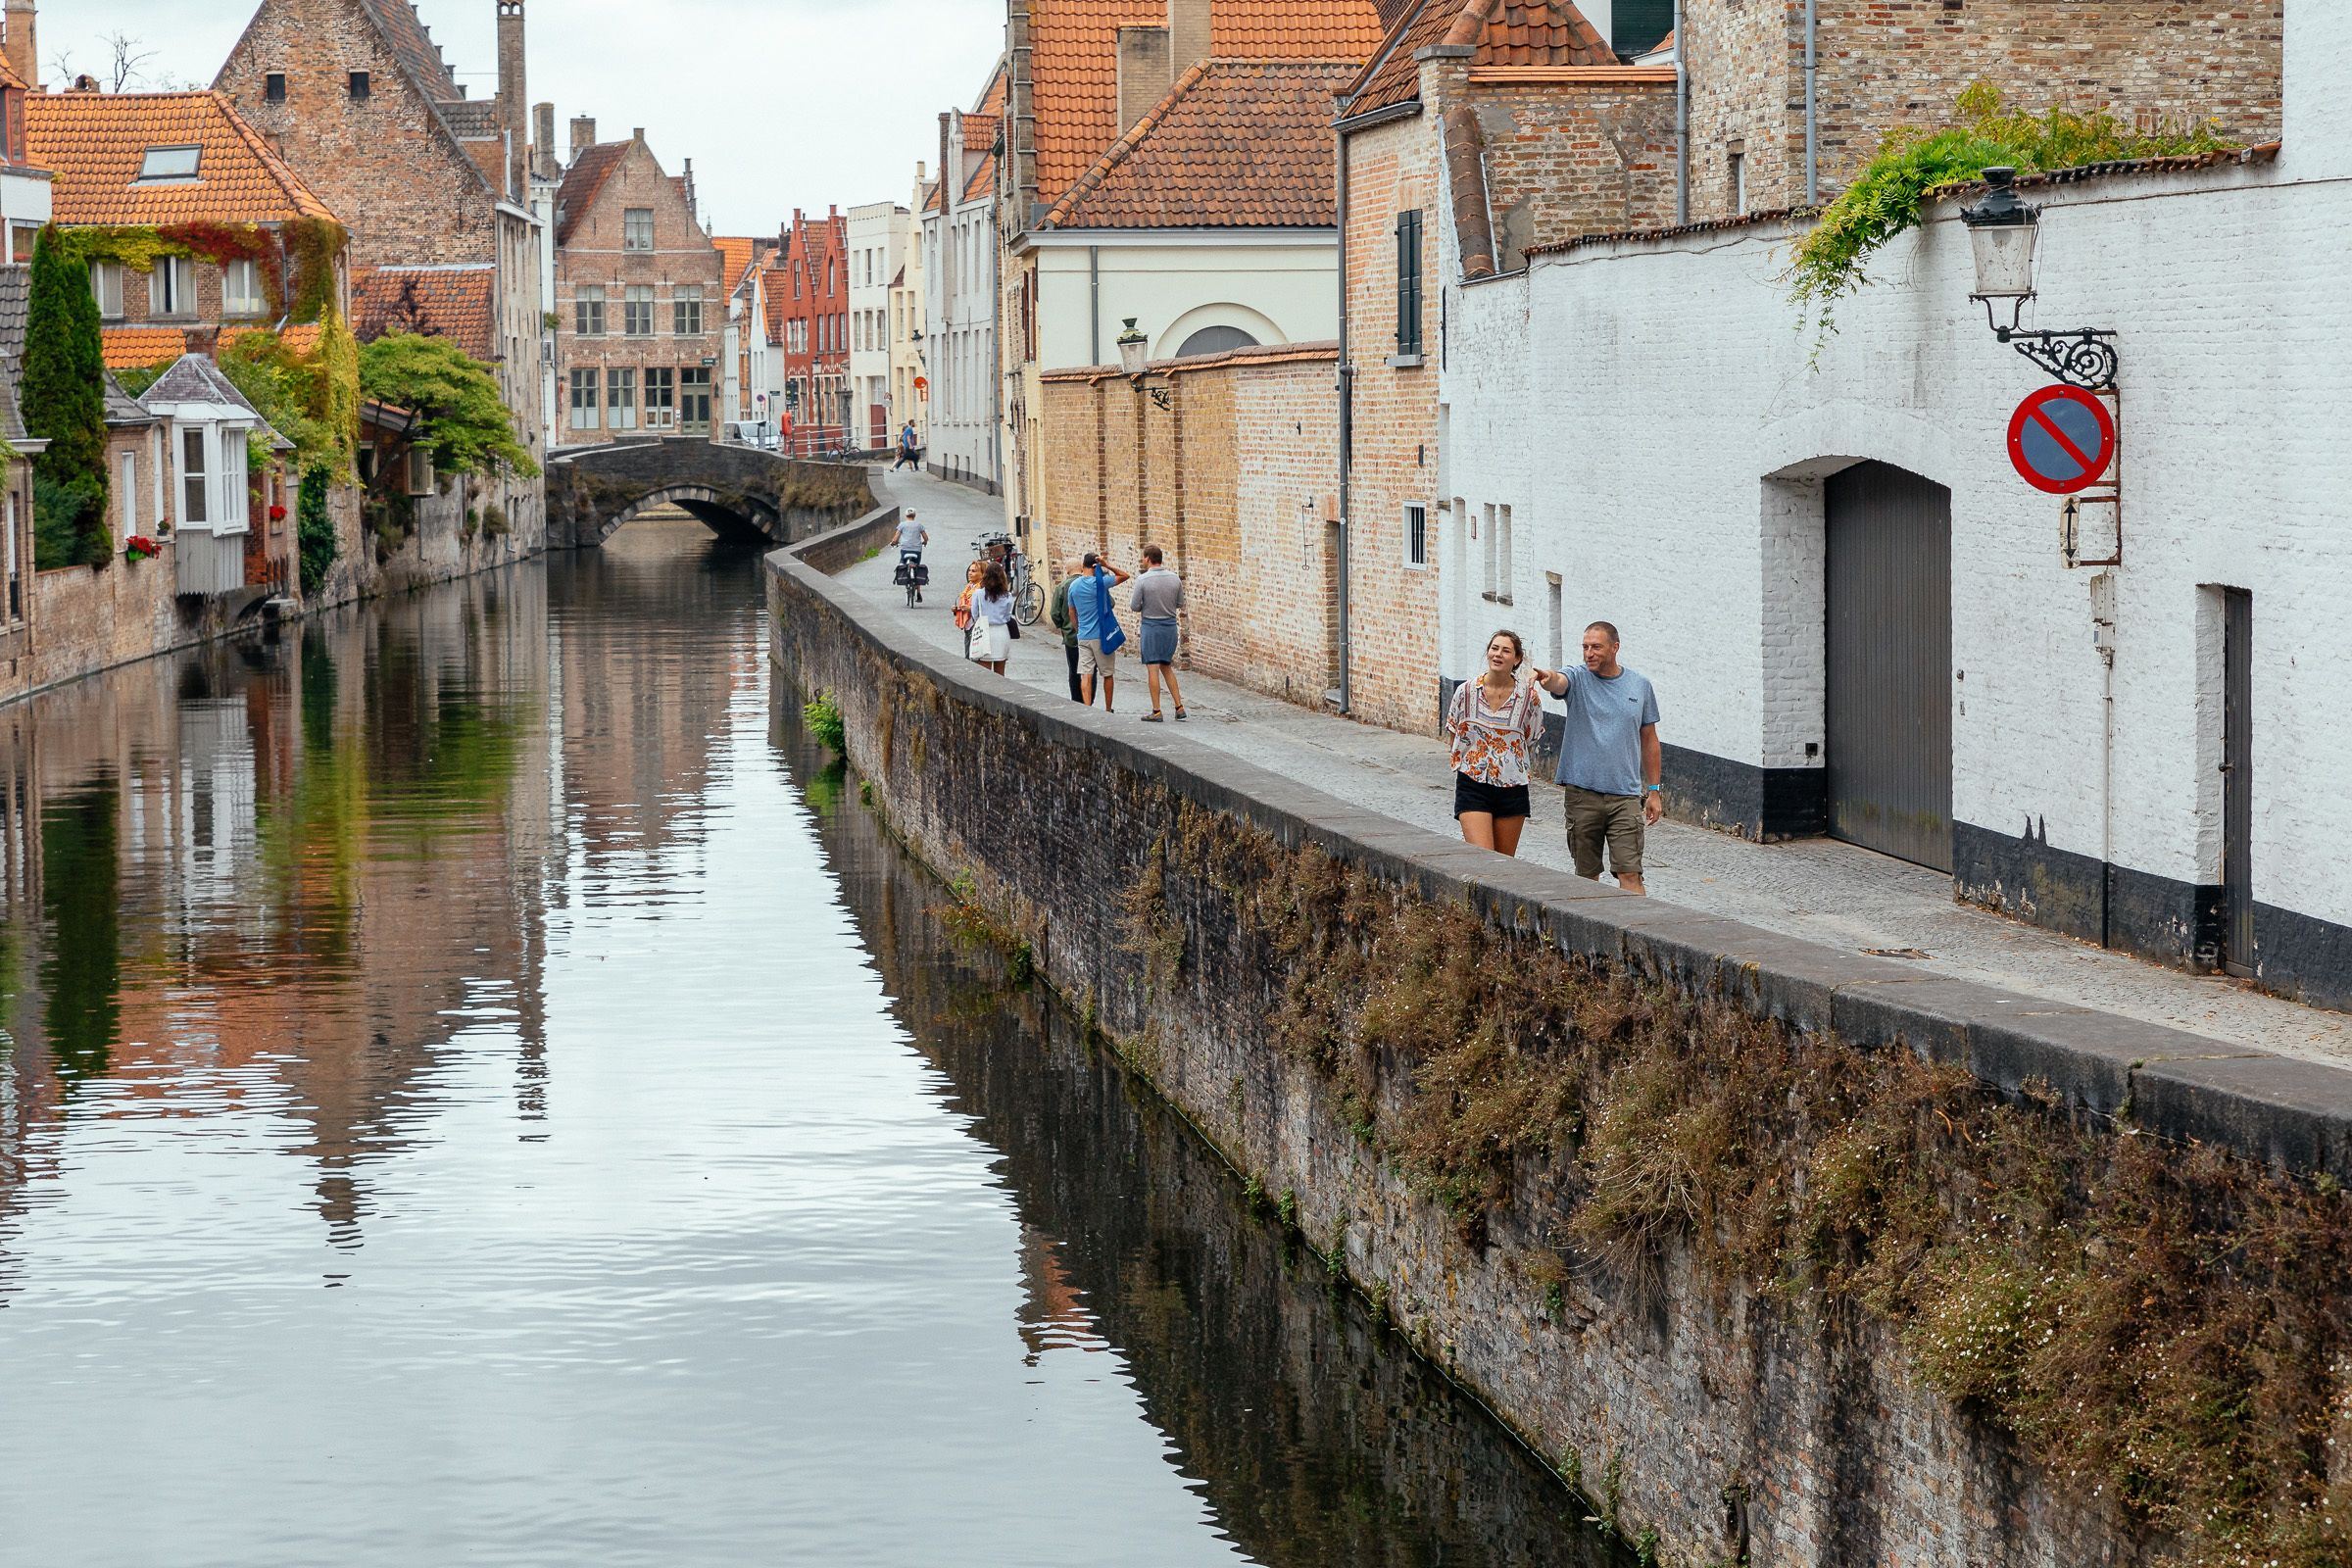 Tourists walking the streets of Bruges